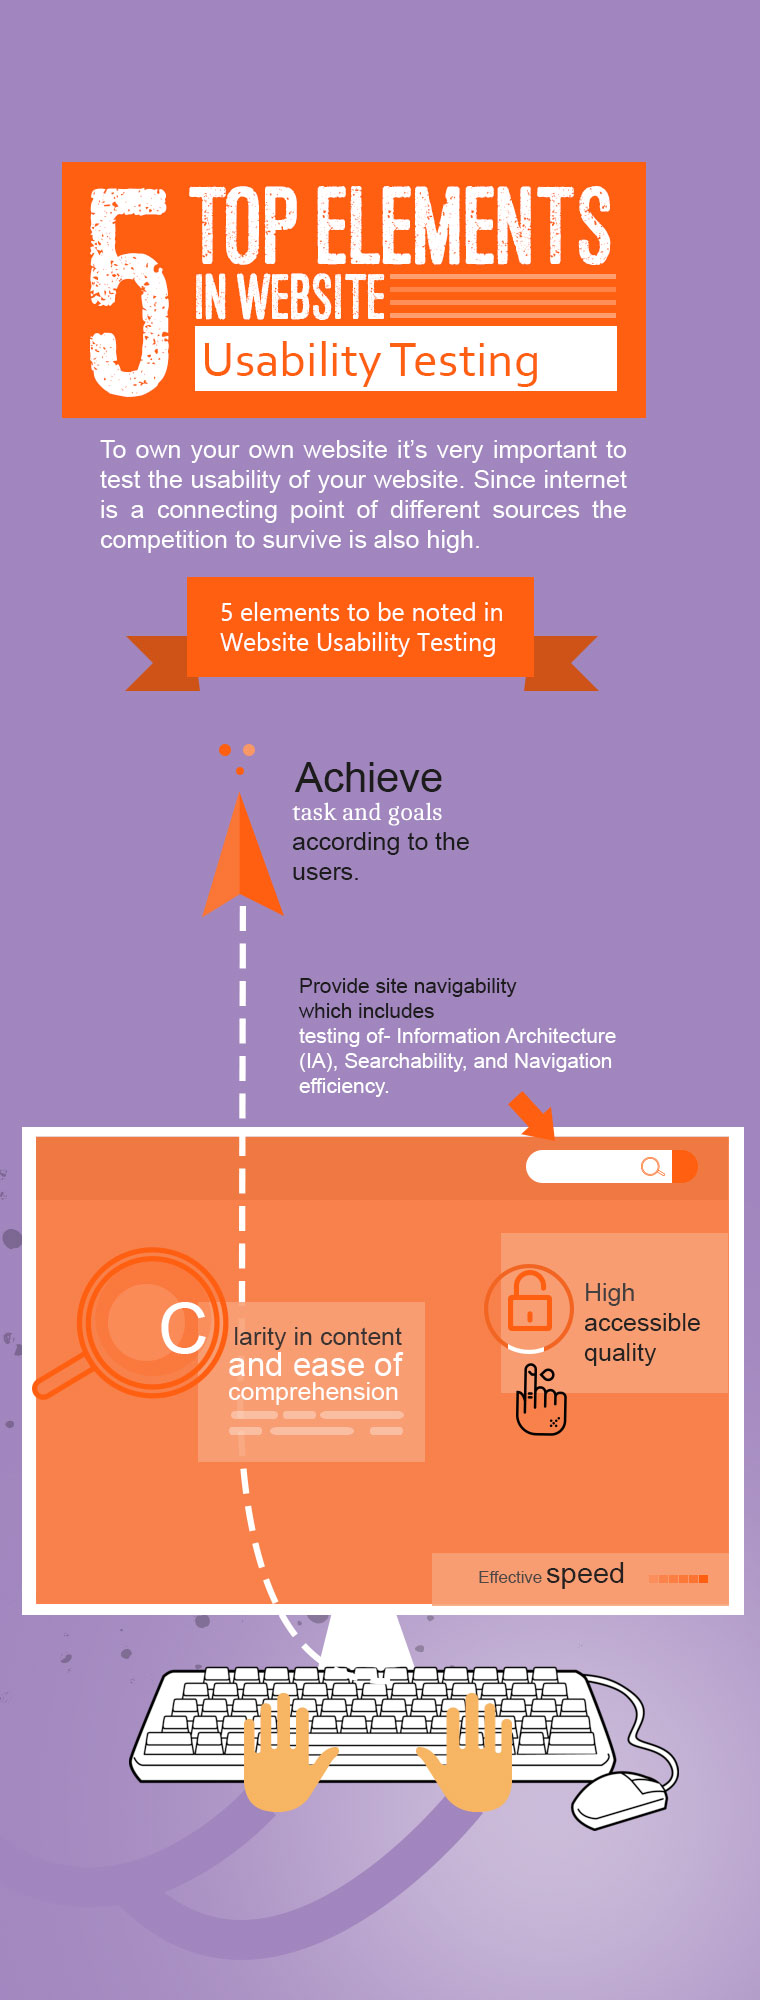 5-top-elements-in-website-usability-testing